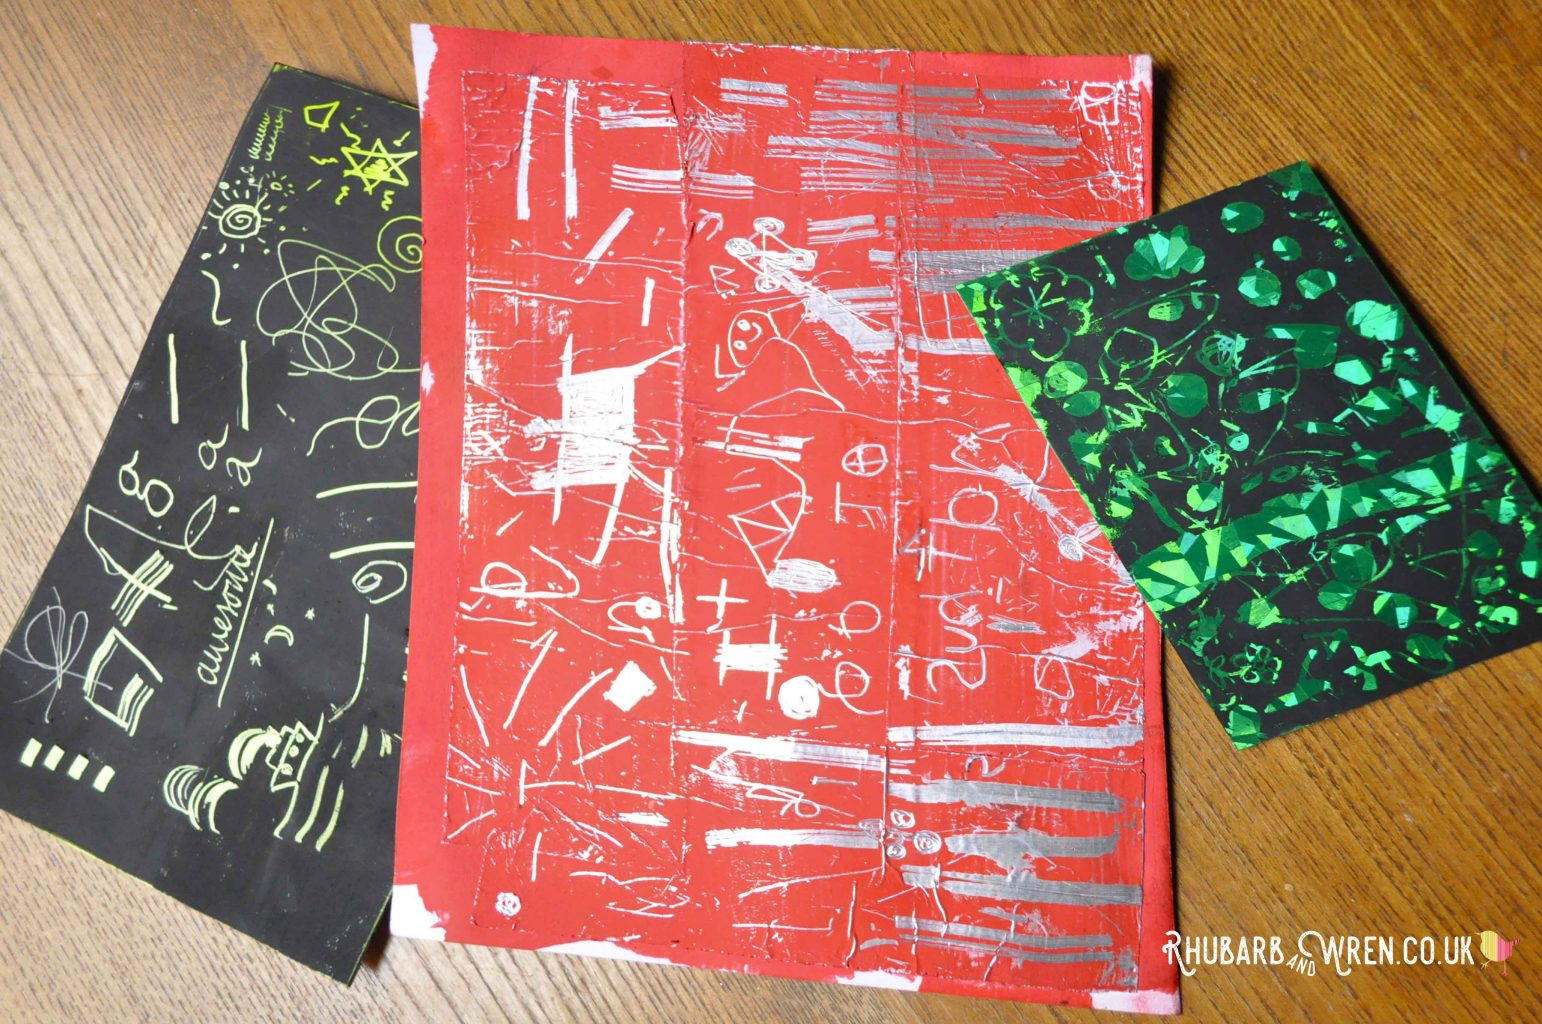 diy scratch art cards made with different materials